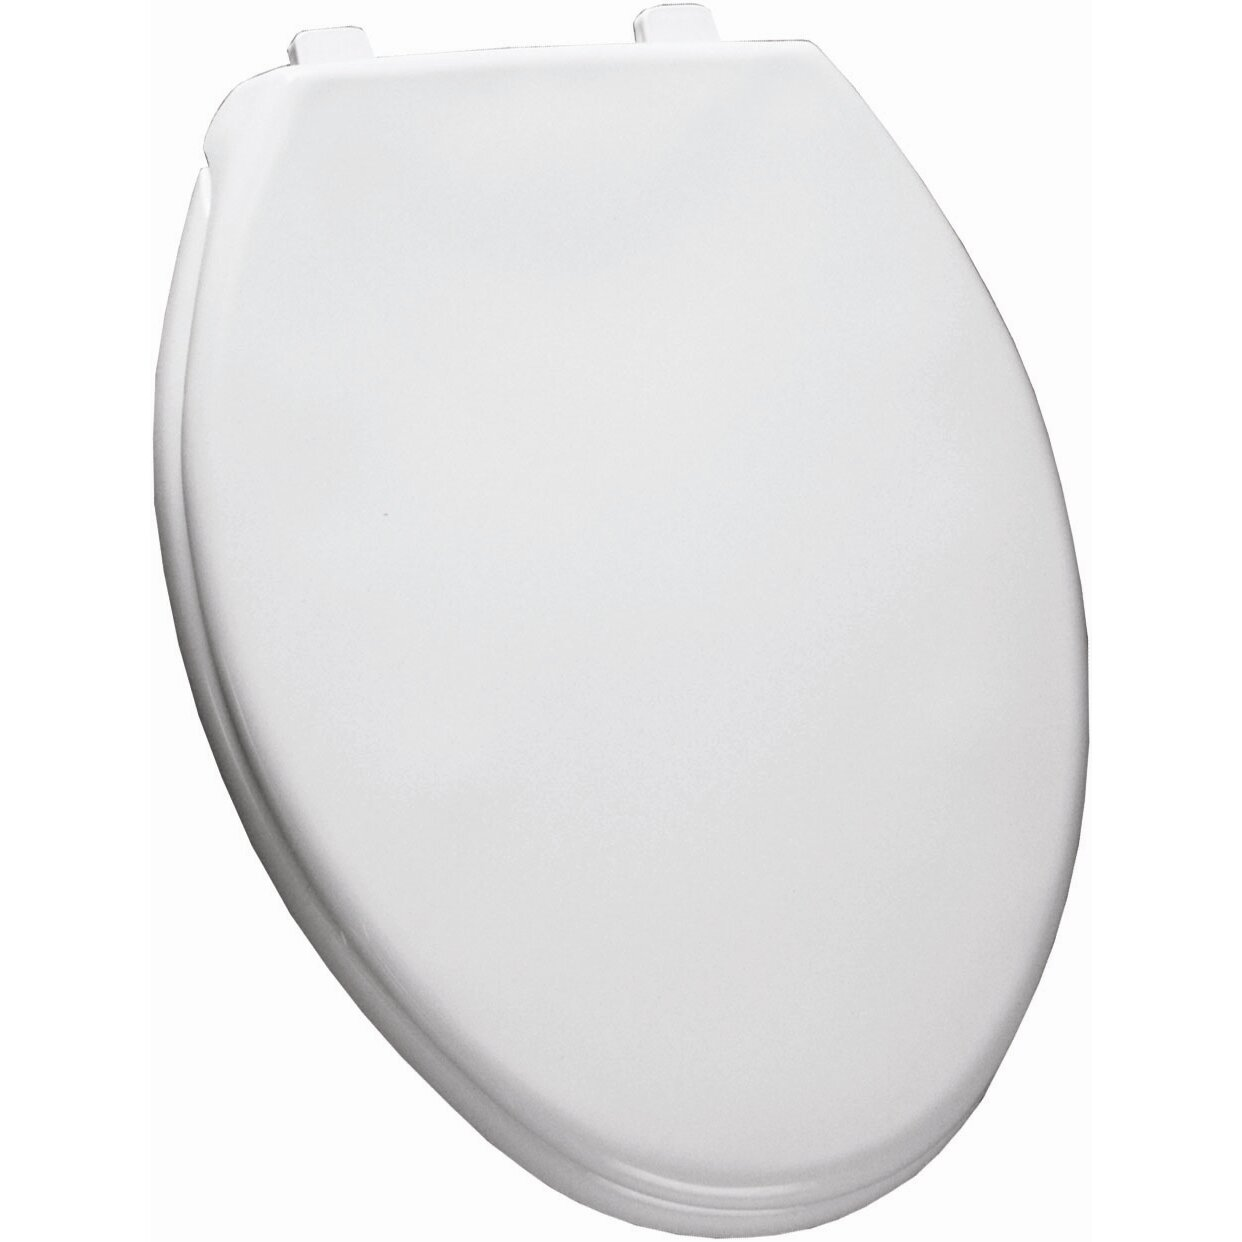 Bemis Residential Solid Plastic Elongated Toilet Seat Reviews Wayfair